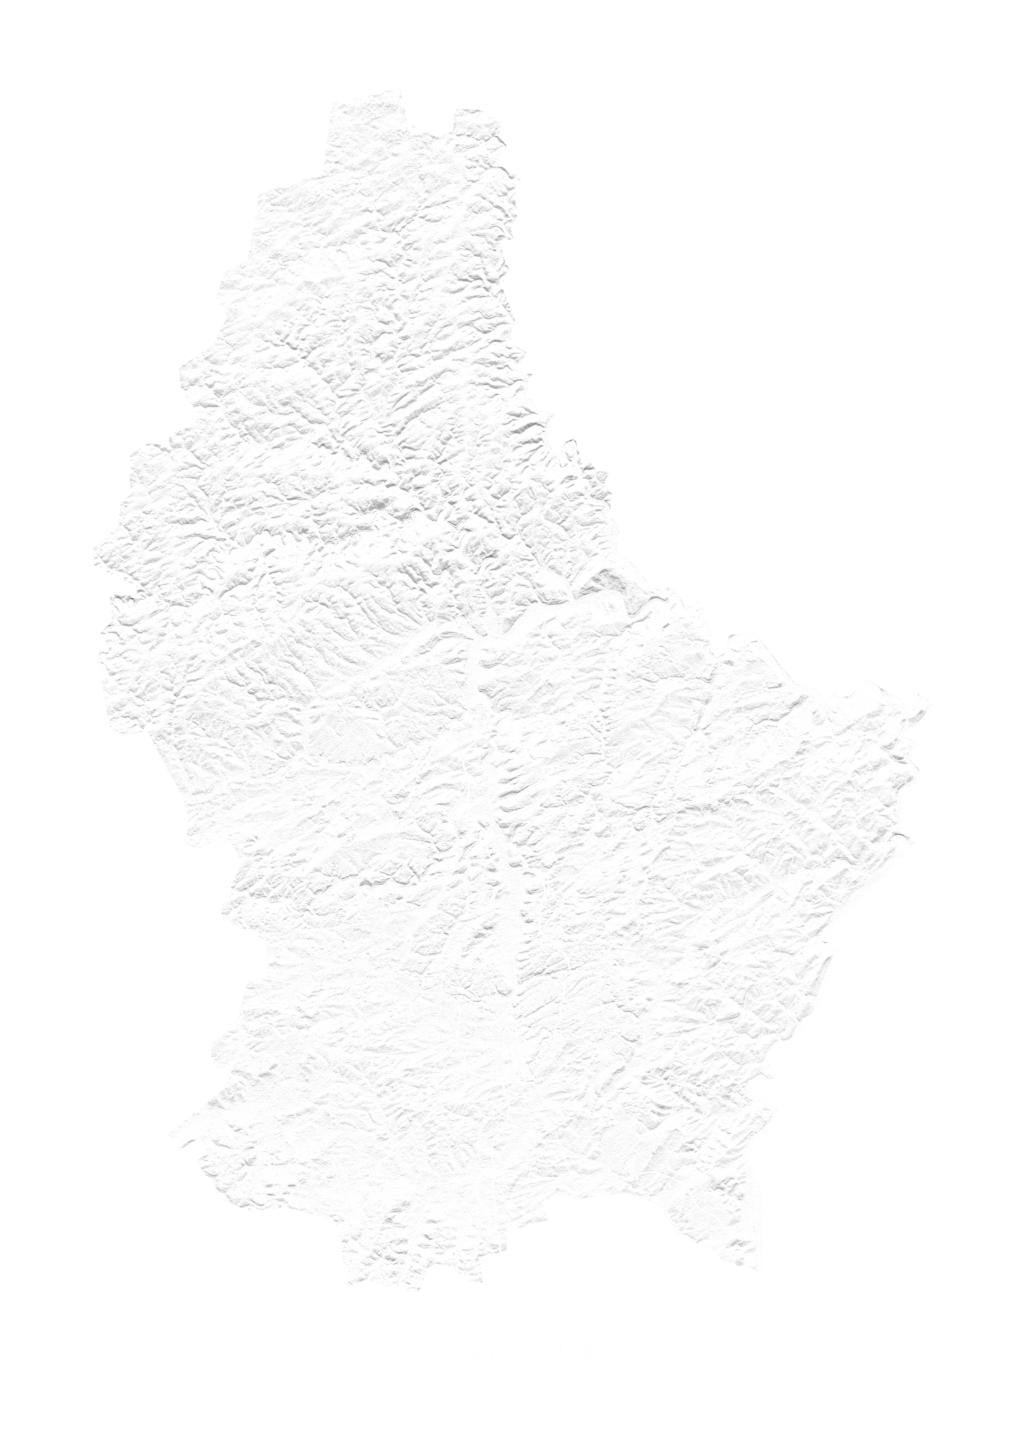 Luxembourg wall map